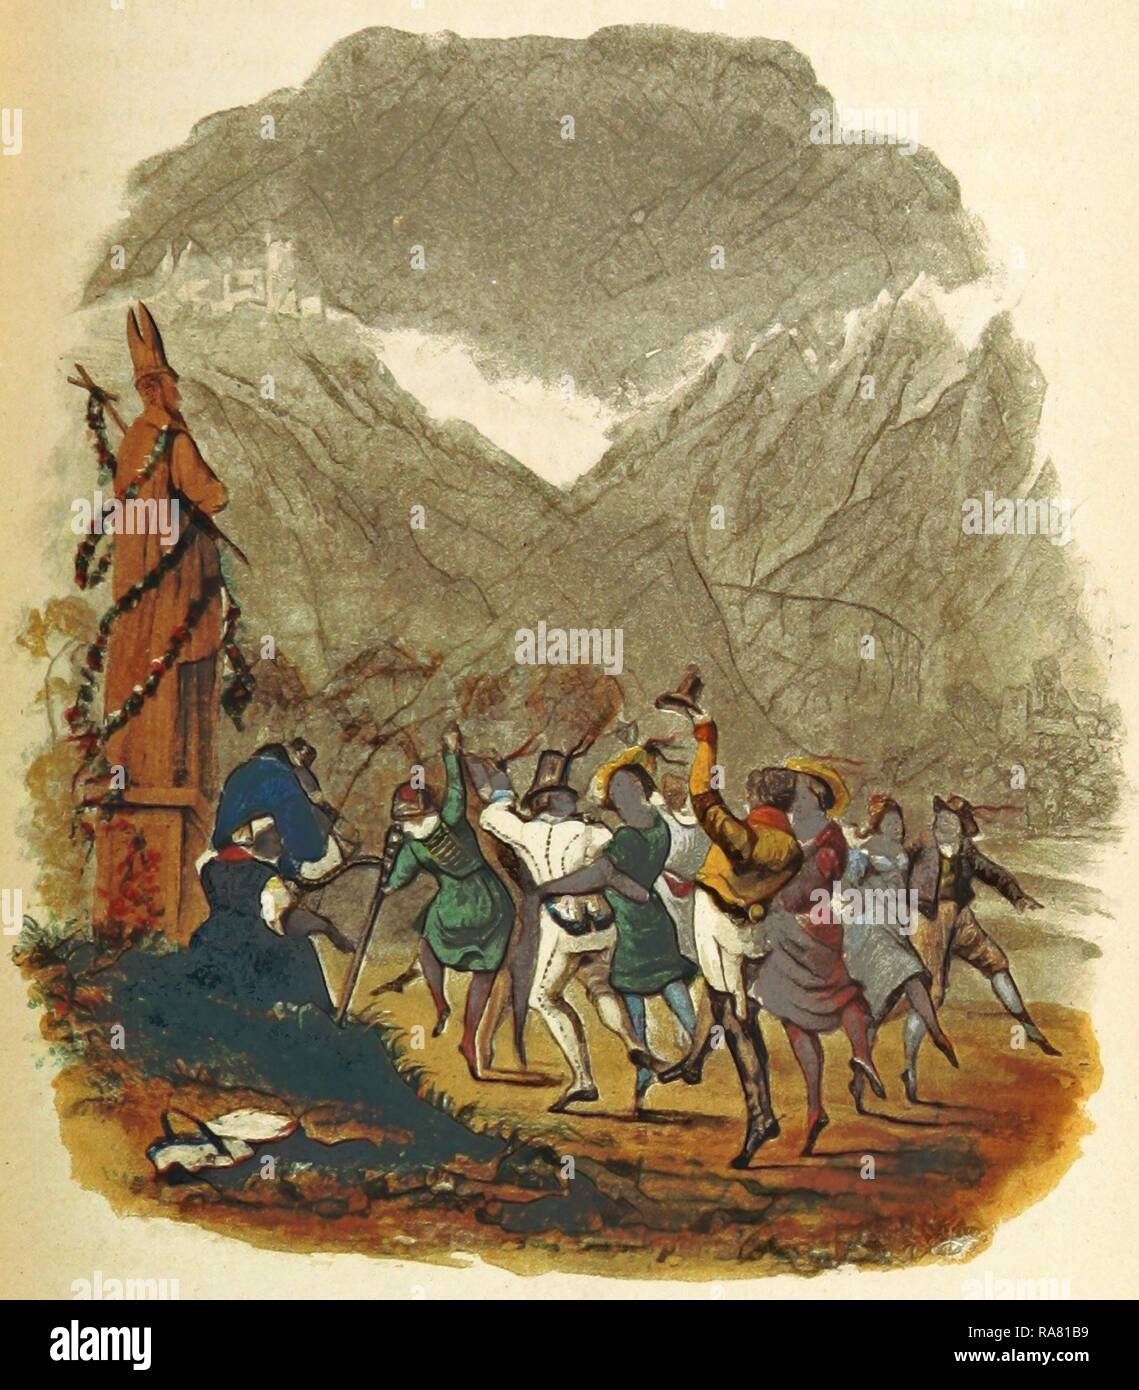 Toplitz, Sketches of Germany and the Germans, in 1834, 1835, and 1836. By an Englishman resident in Germany, 19th reimagined - Stock Image